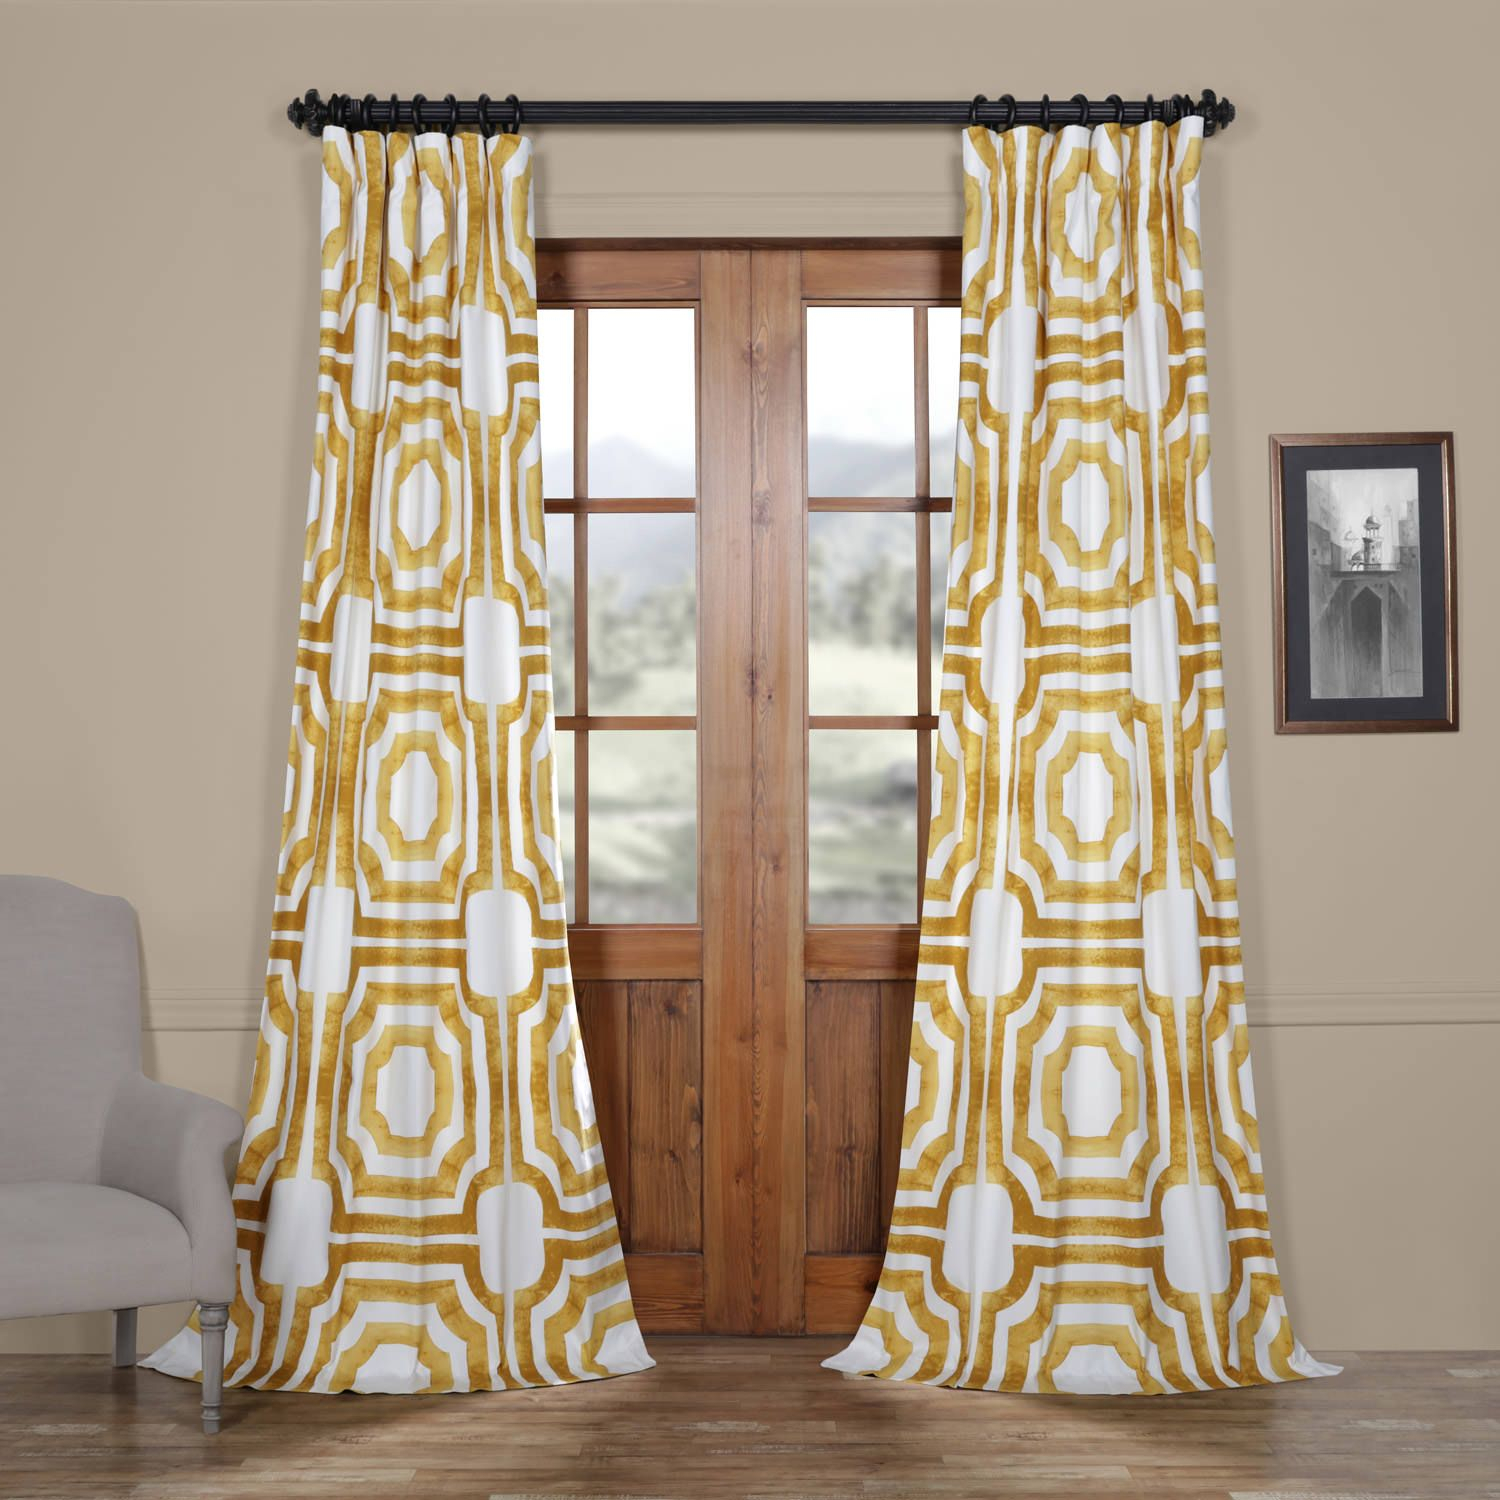 Mecca Gold Printed Cotton Curtain | Printed Cotton Throughout Mecca Printed Cotton Single Curtain Panels (View 8 of 20)